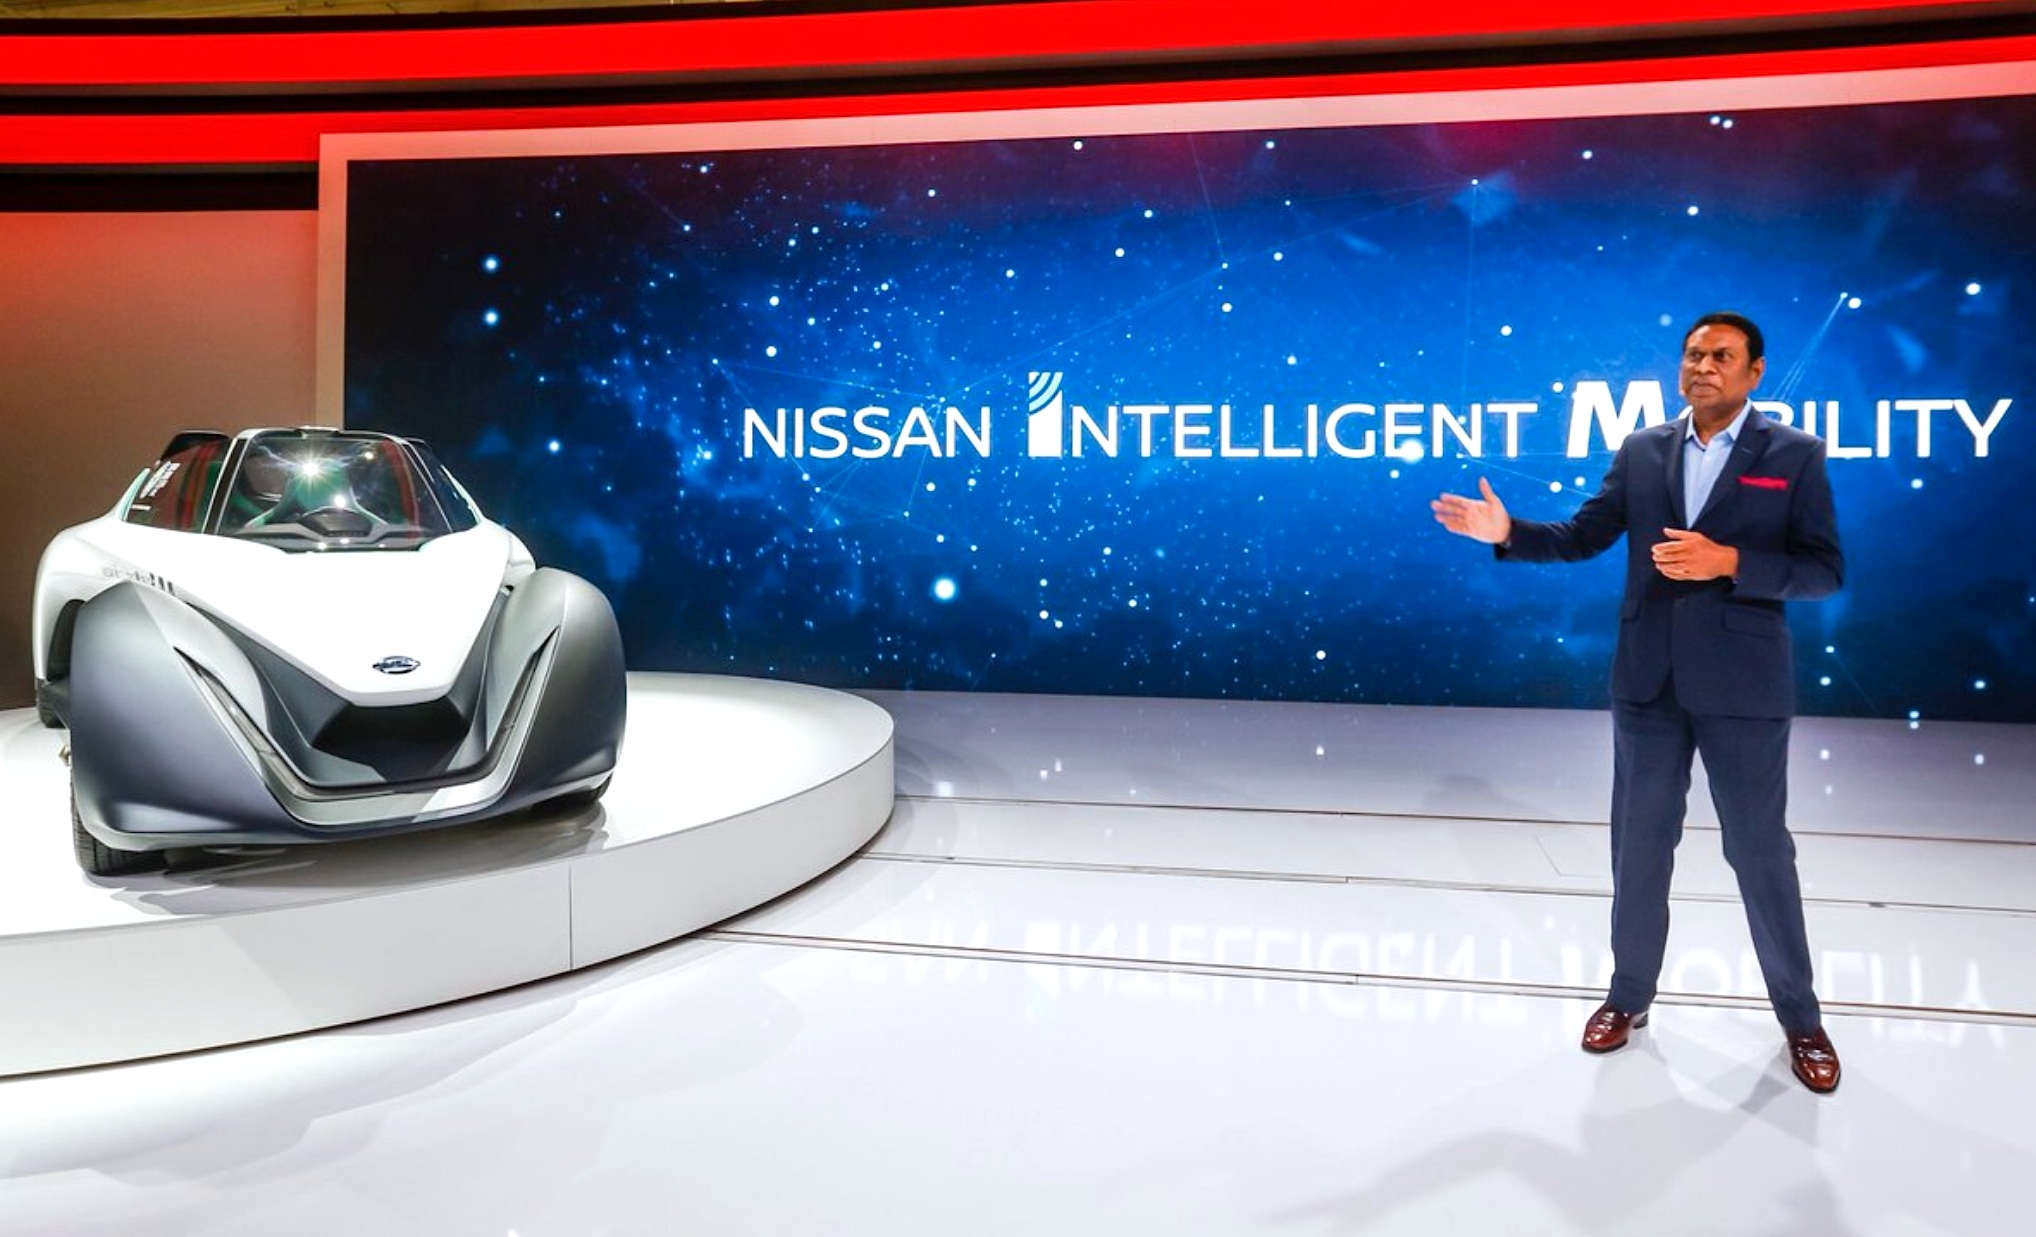 Nissan Dubai show - Photo 02-source